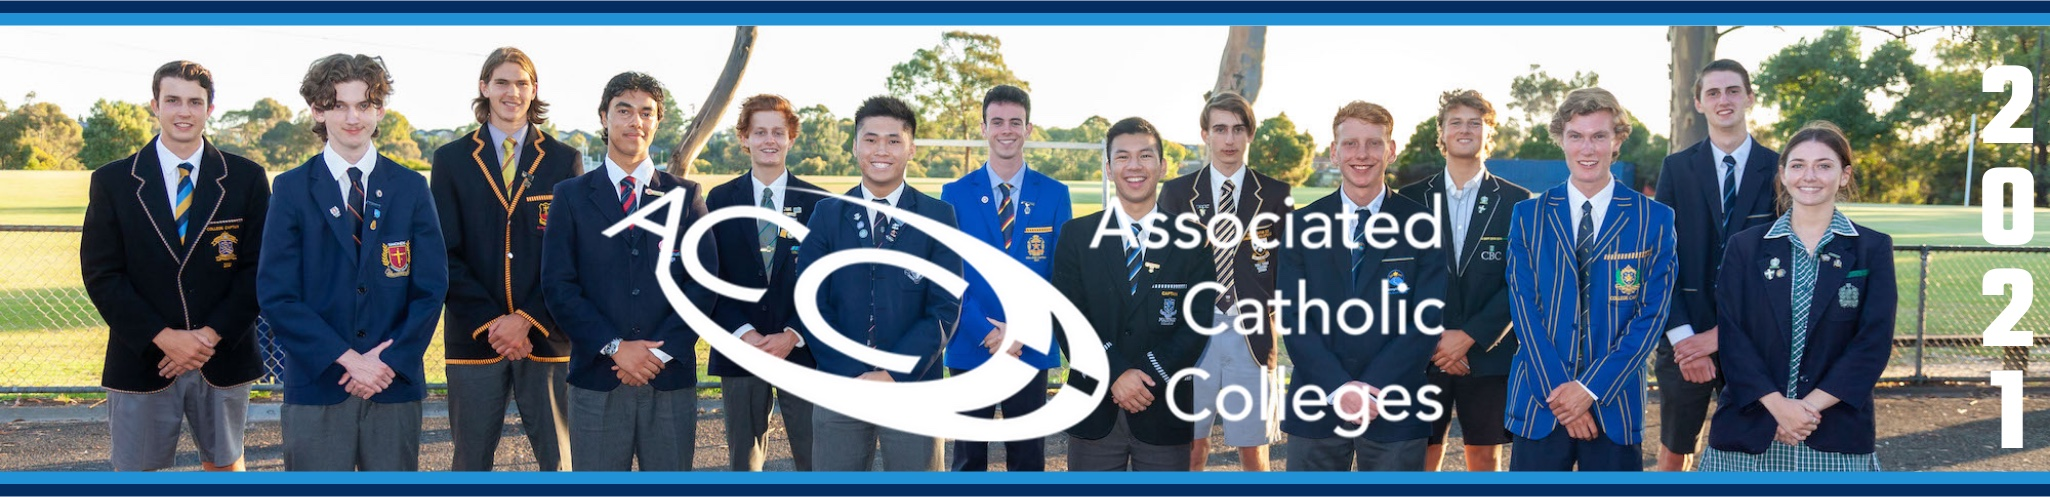 Associated Catholic Colleges